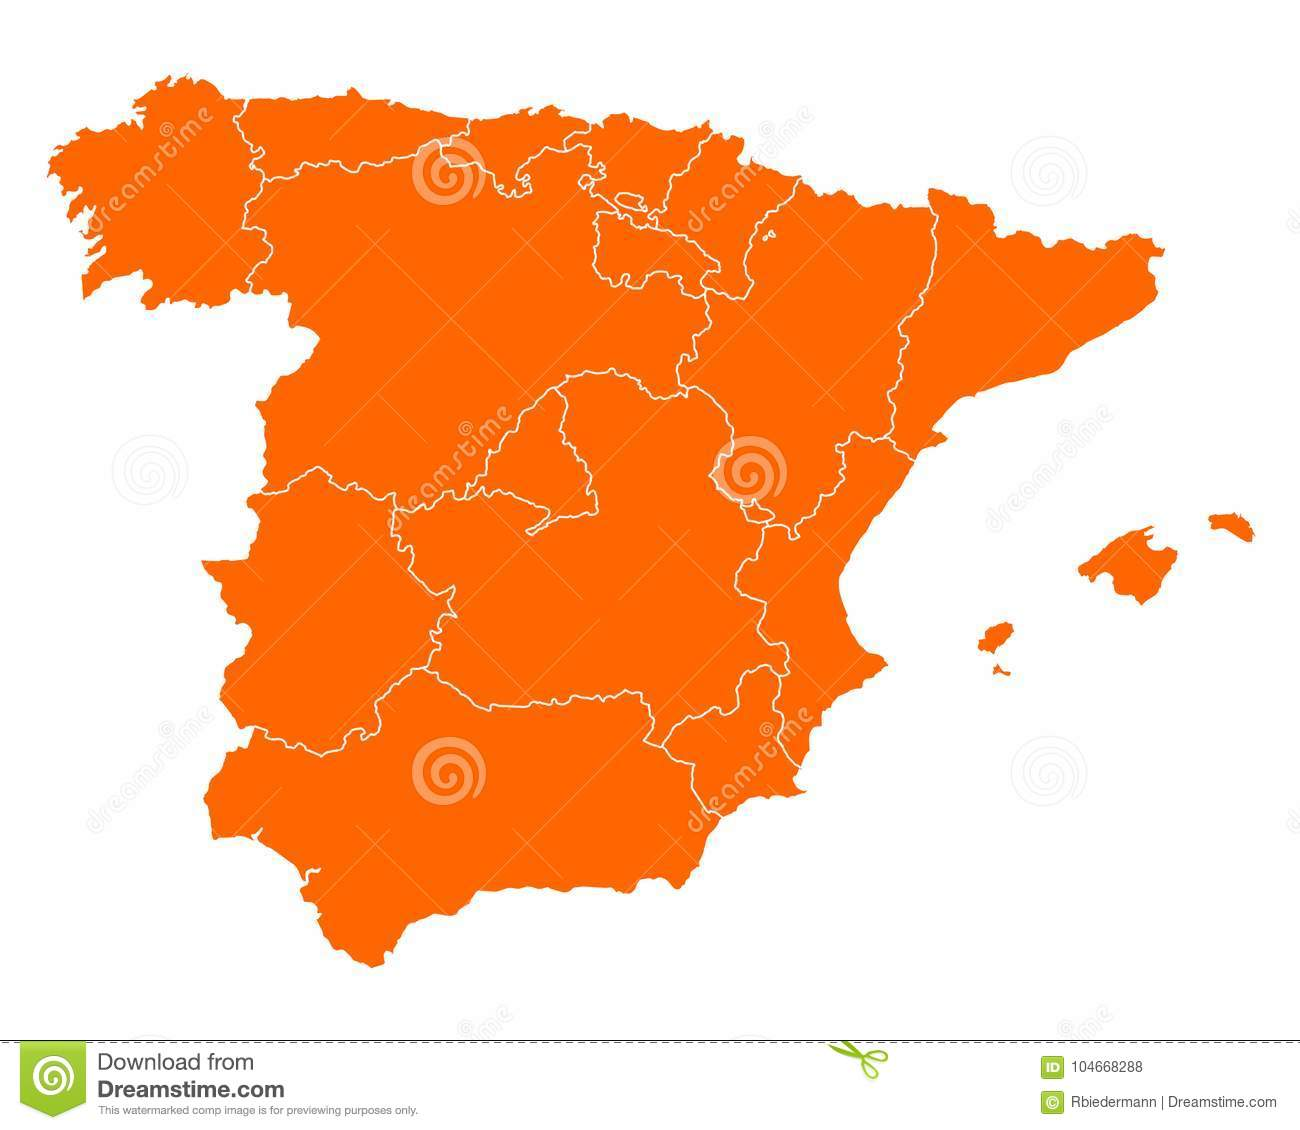 Map Of Spain Download Free.Map Of Spain Stock Vector Illustration Of Murcia Borders 104668288